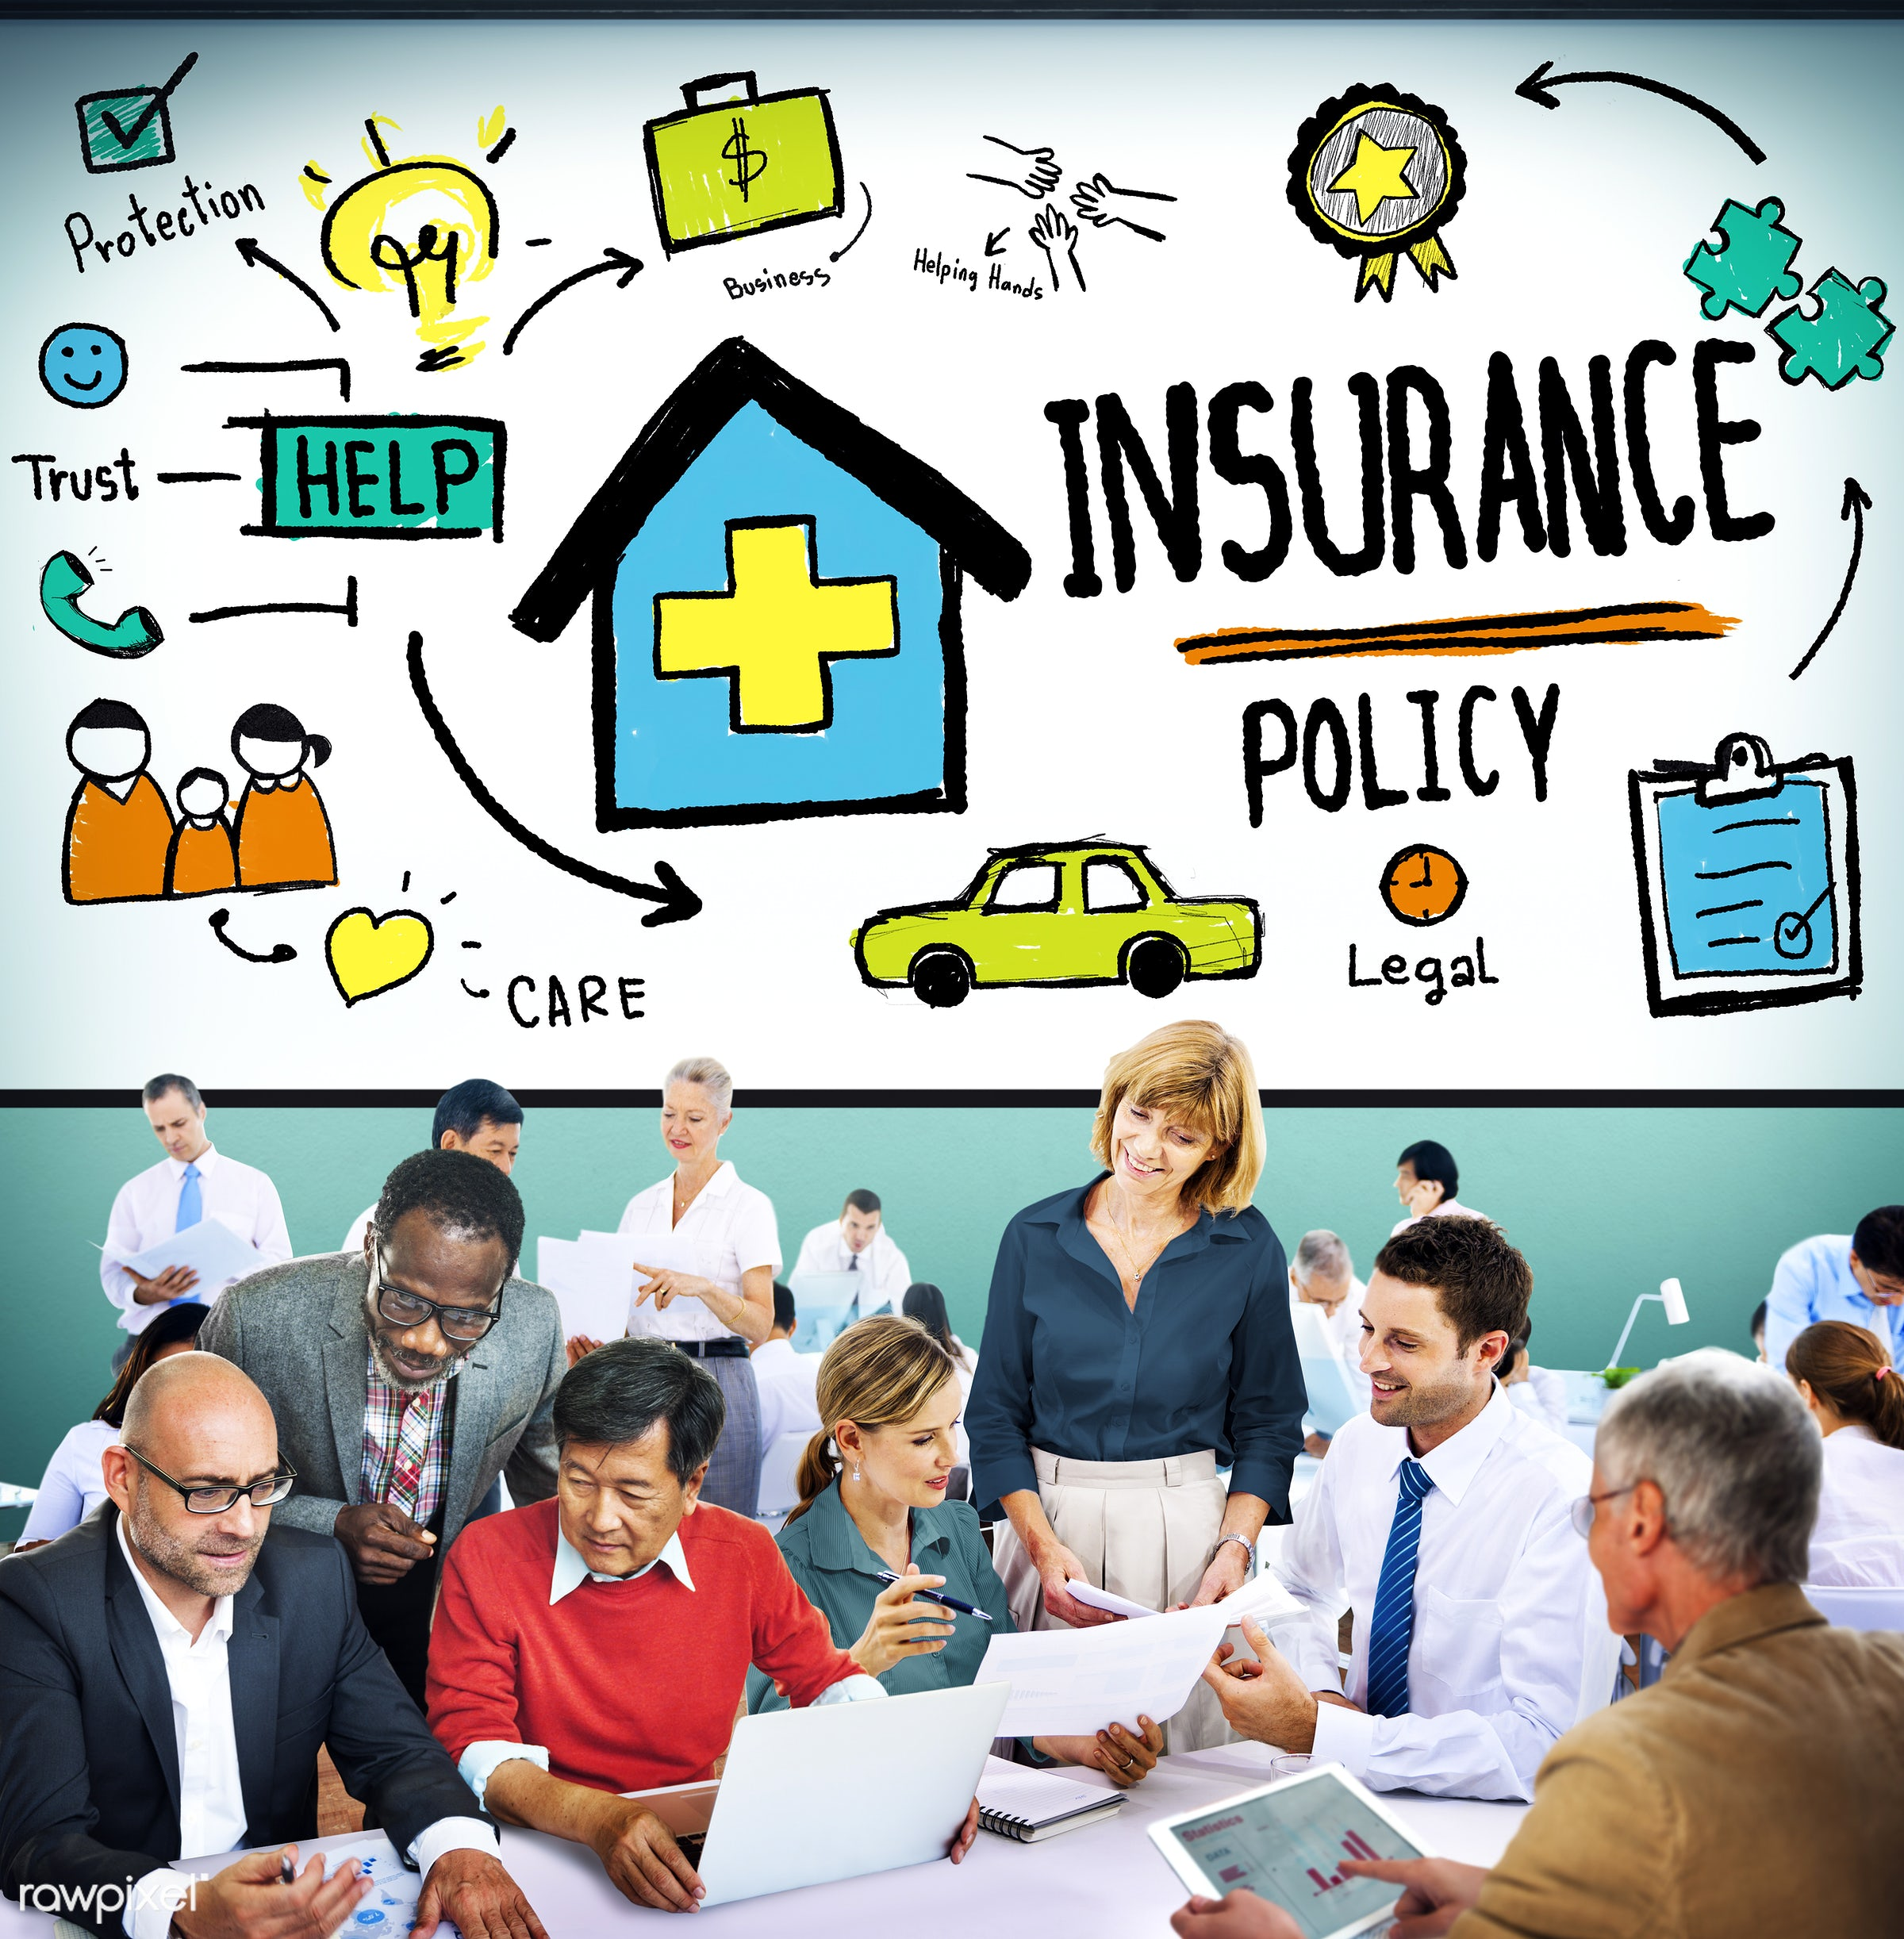 accident insurance, analysis, benefits, business, business people, businessmen, businesswomen, busy, car insurance,...